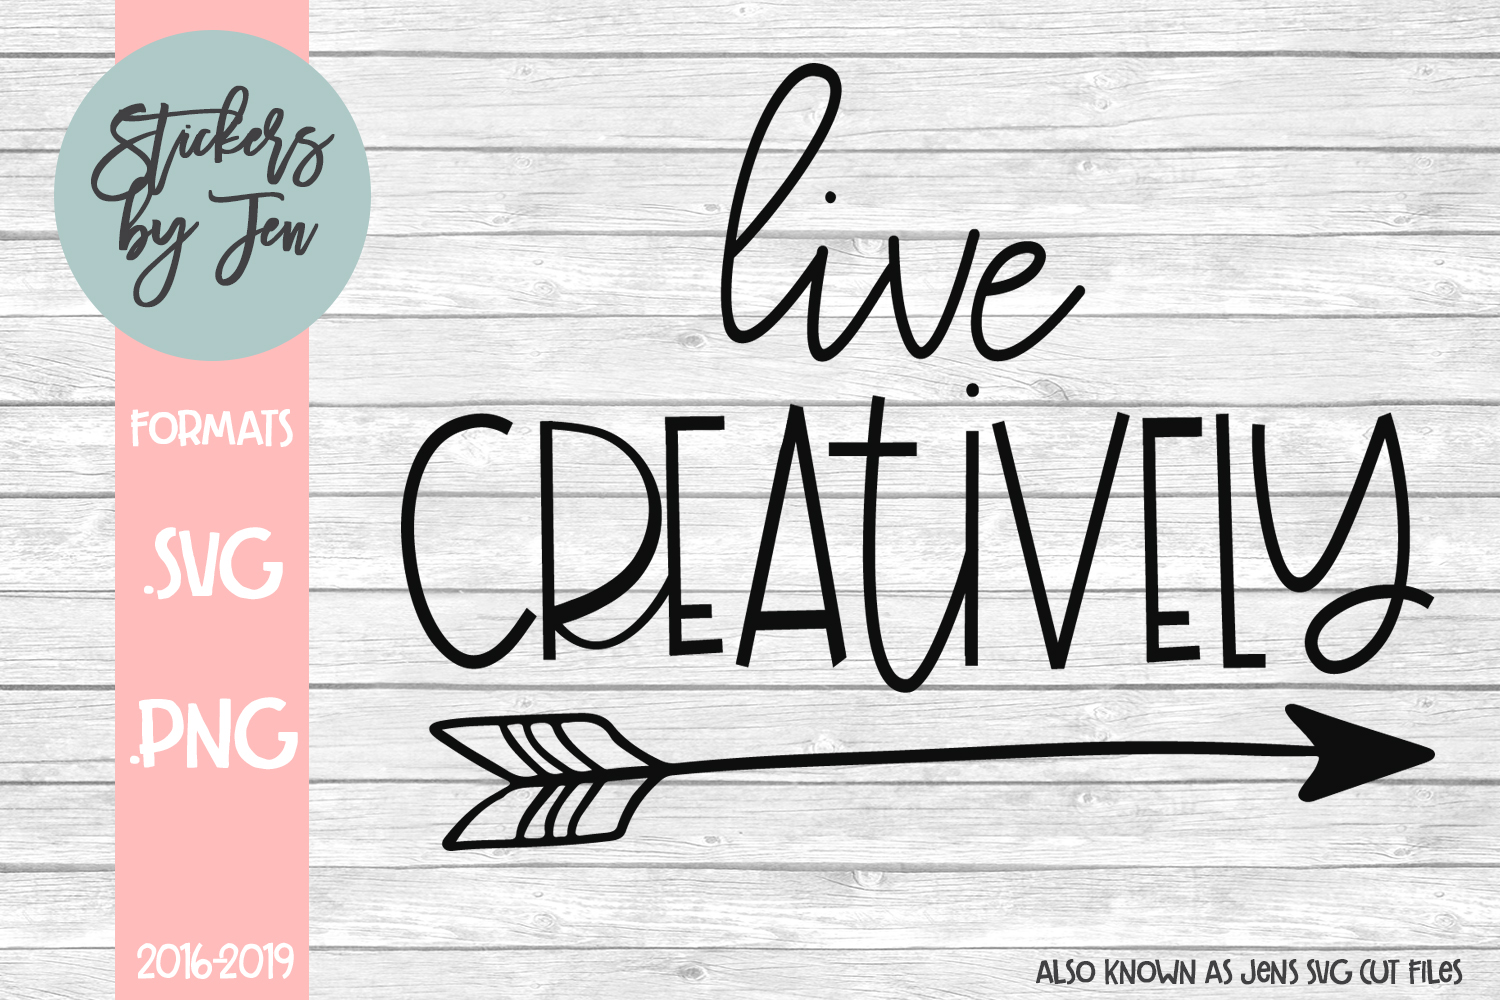 Download Free Live Creatively Graphic By Stickers By Jennifer Creative Fabrica for Cricut Explore, Silhouette and other cutting machines.